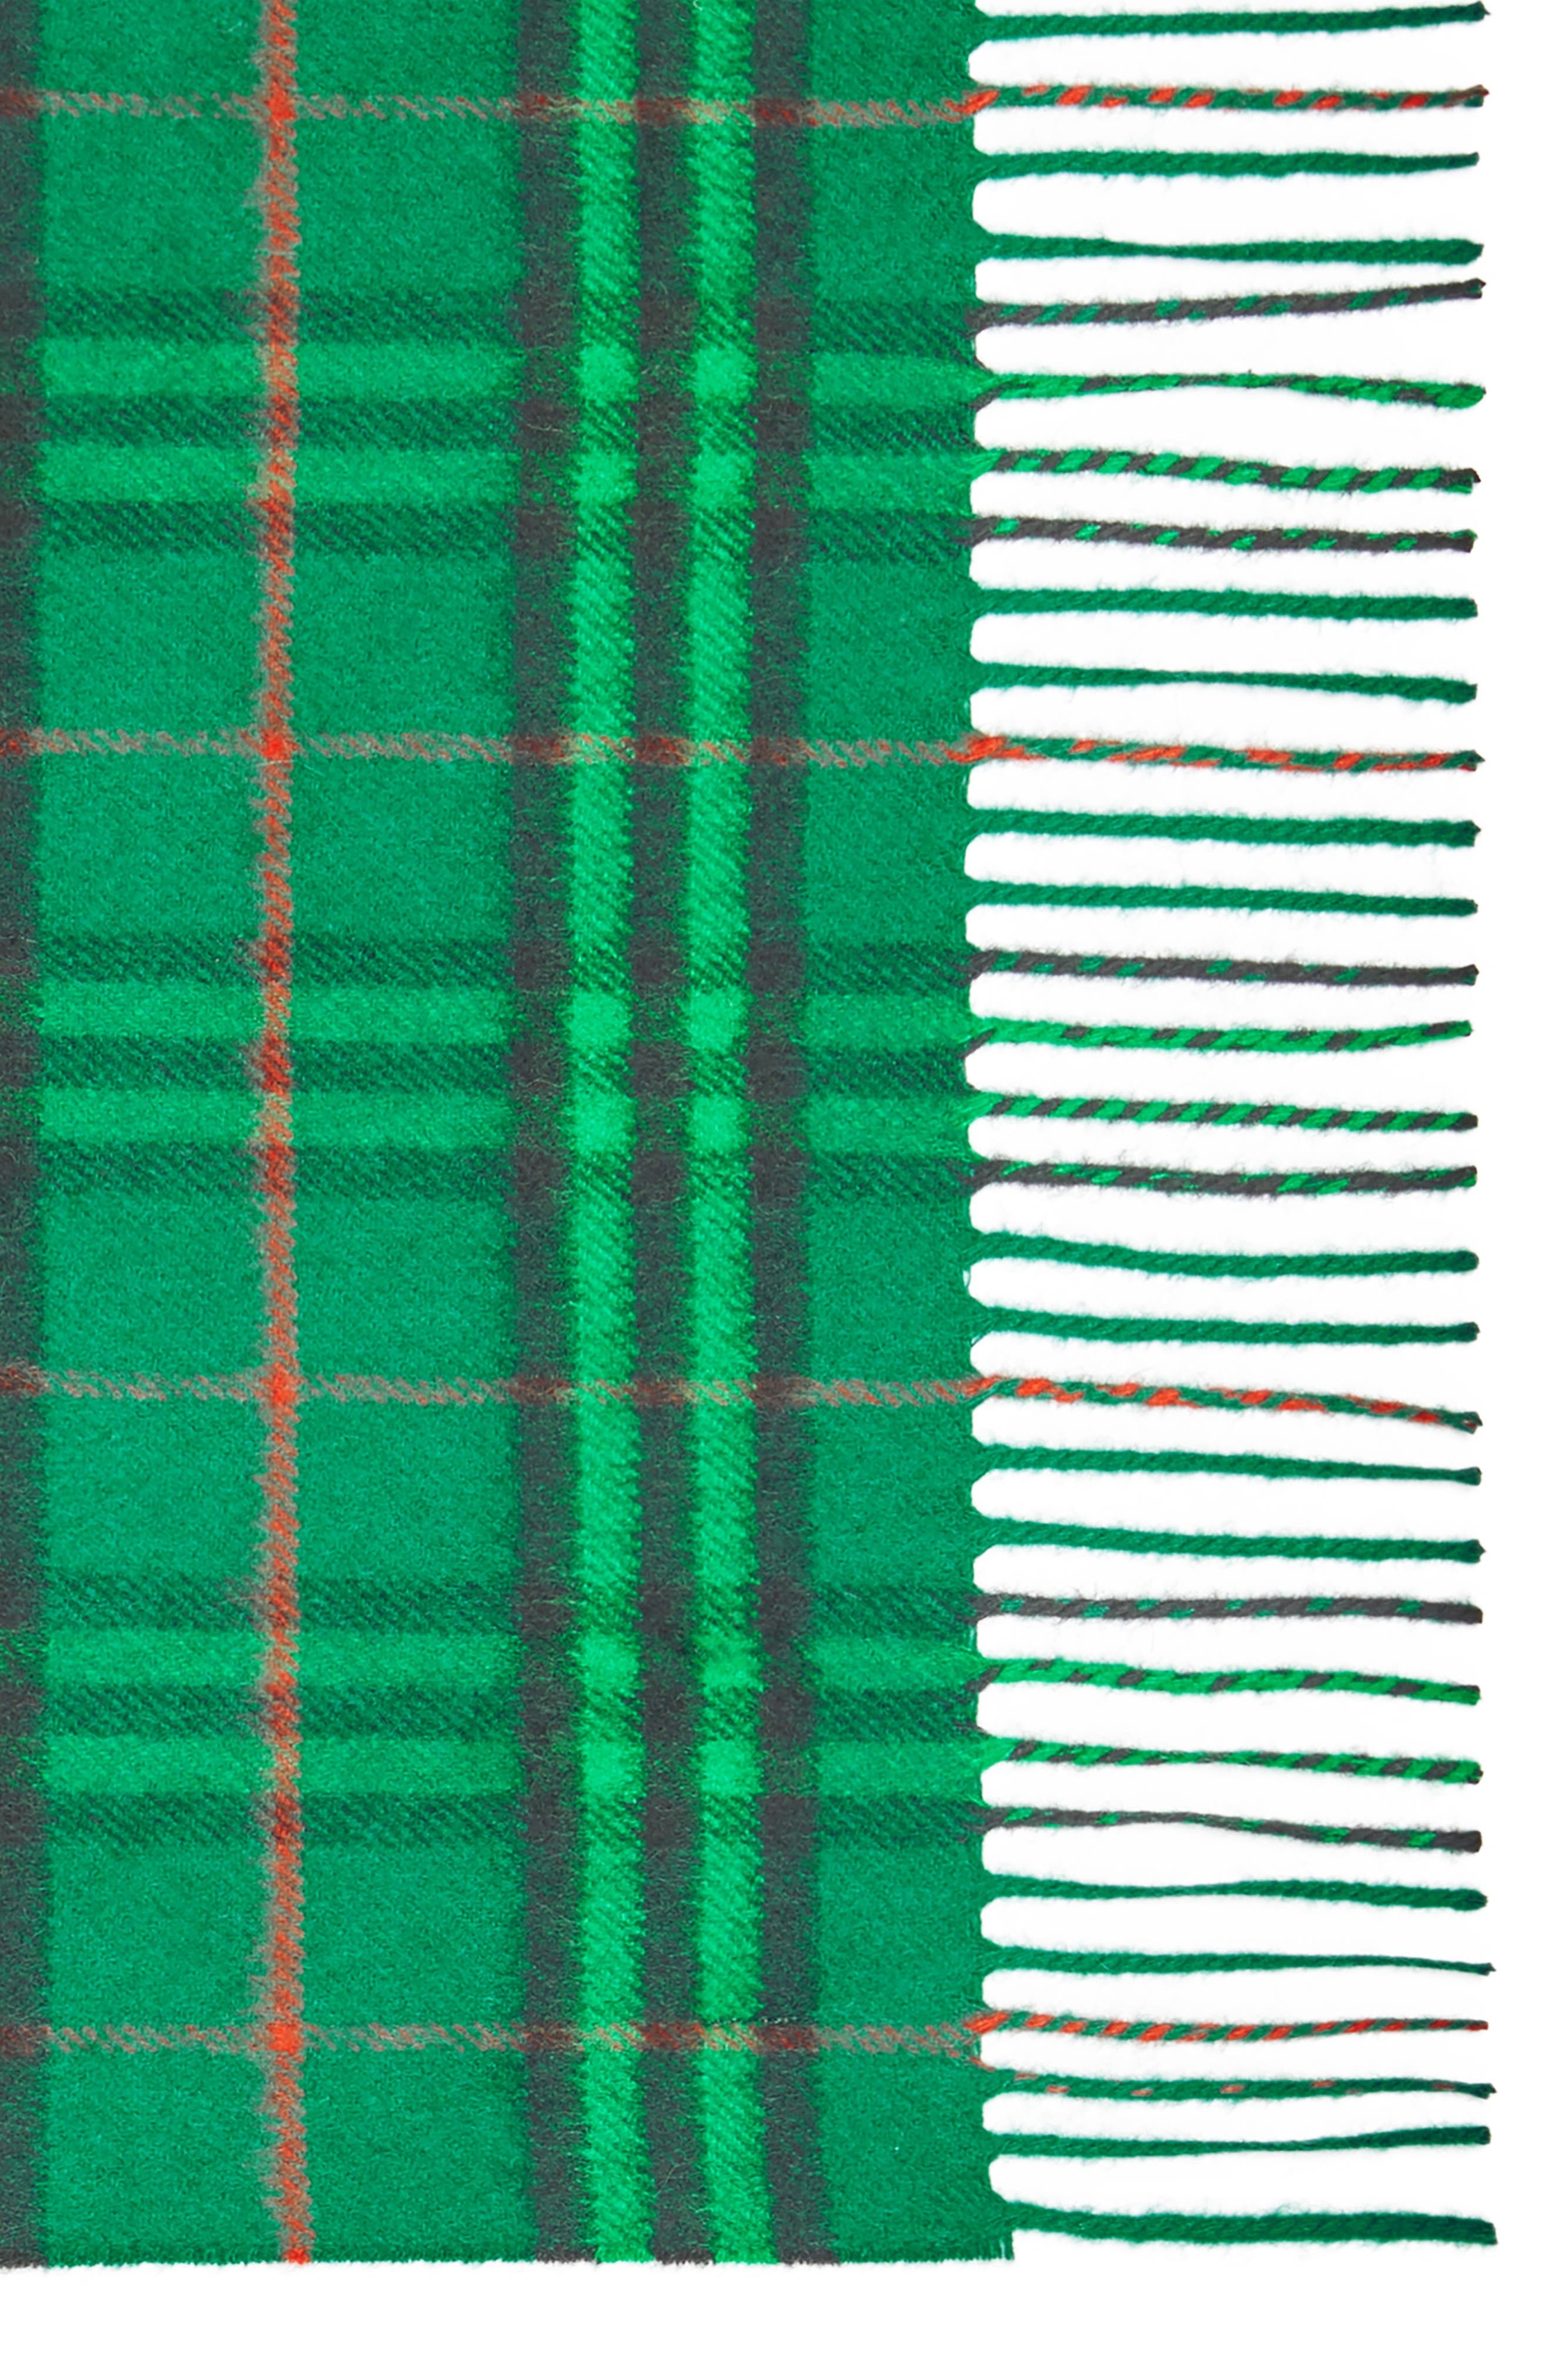 BURBERRY,                             Vintage Check Cashmere Scarf,                             Alternate thumbnail 4, color,                             VIRIDIAN GREEN